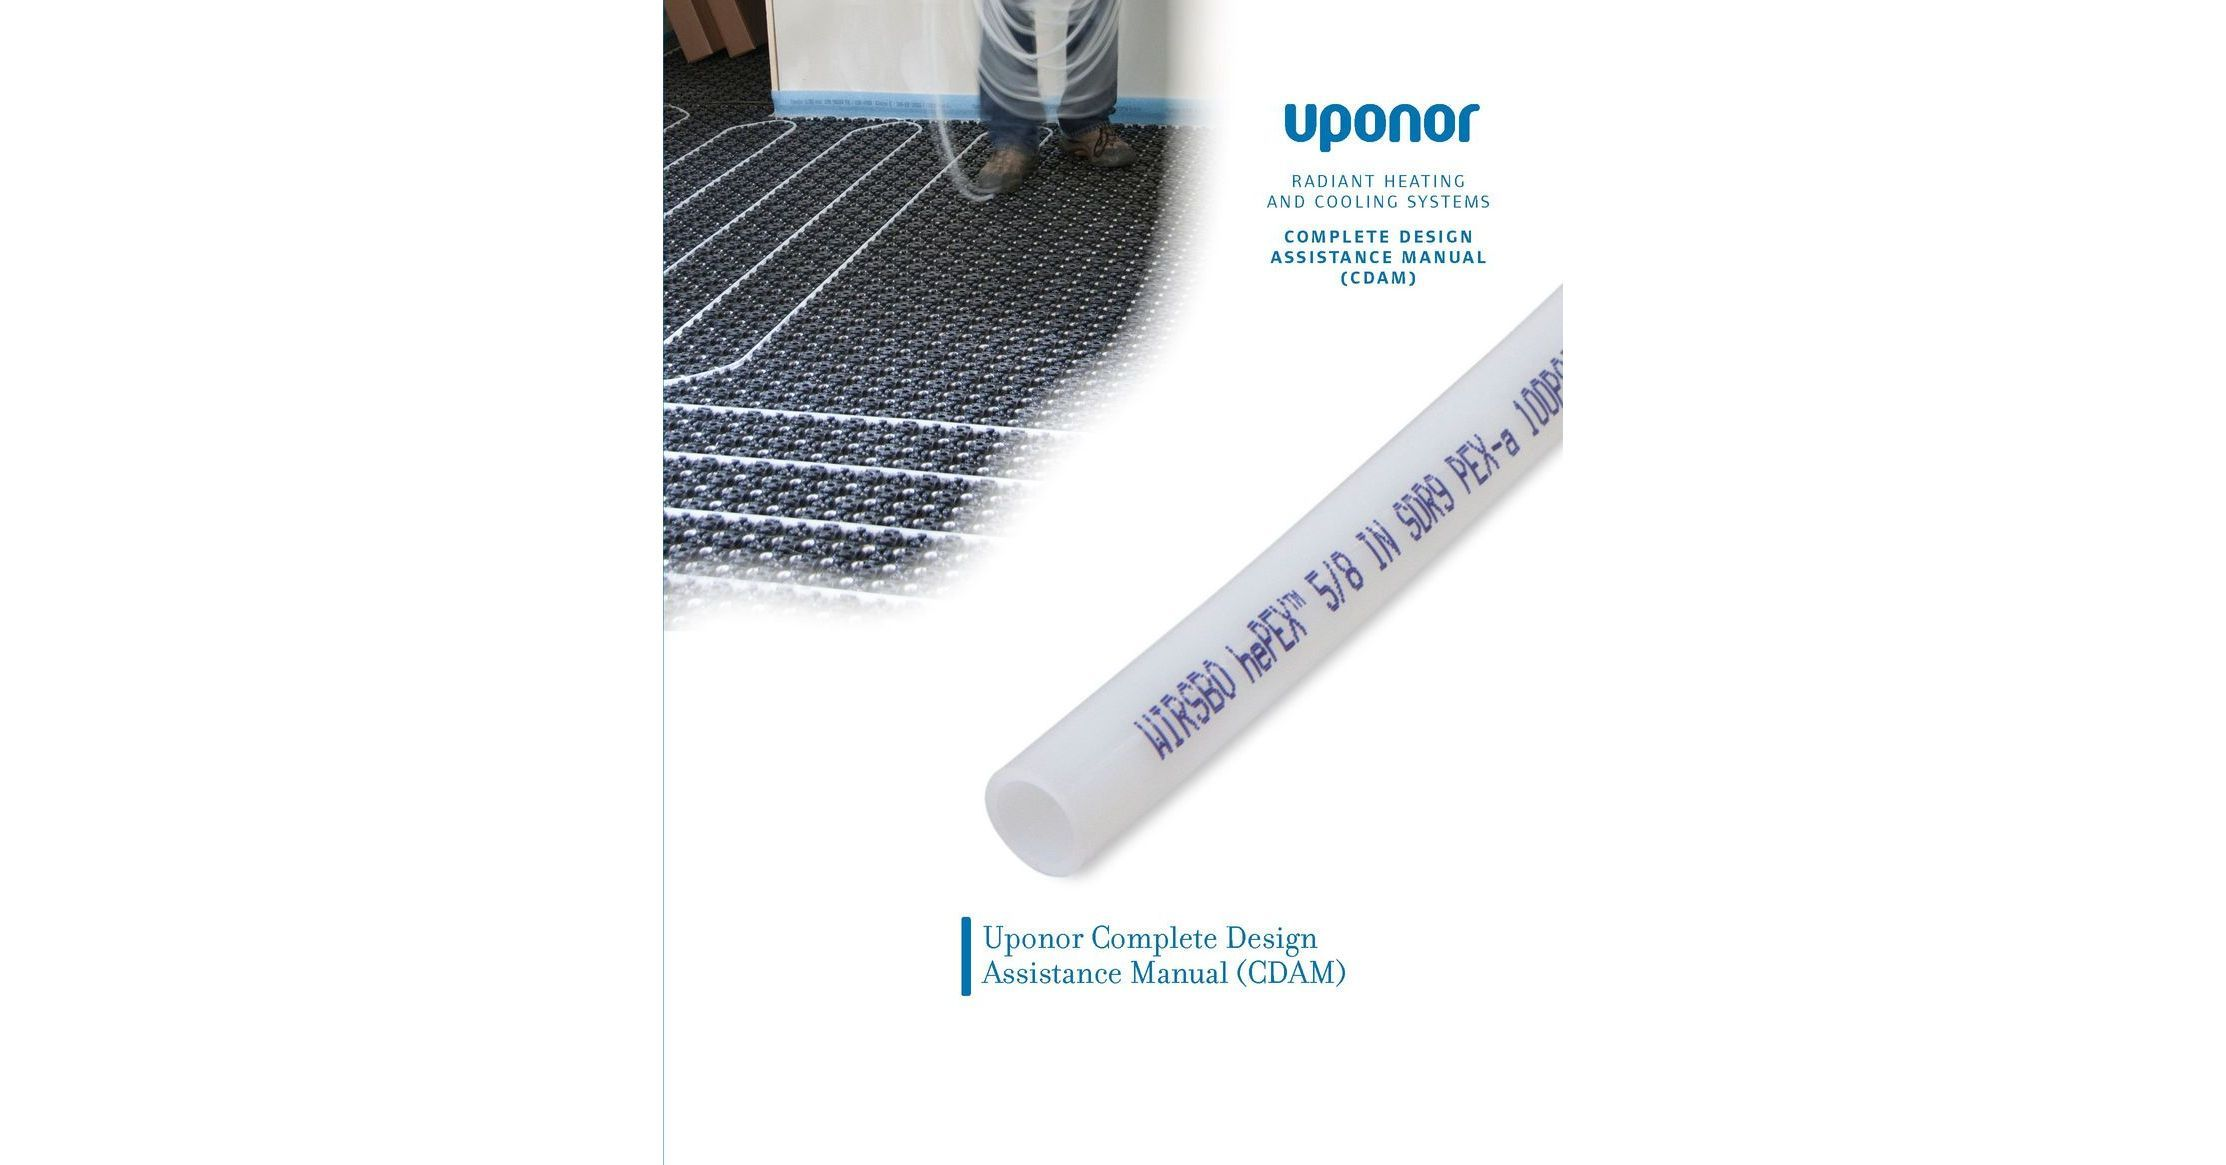 Complete Design Assistance Manual Cdam 7th Edition Pdf Radiant Heating System Heating Systems Design